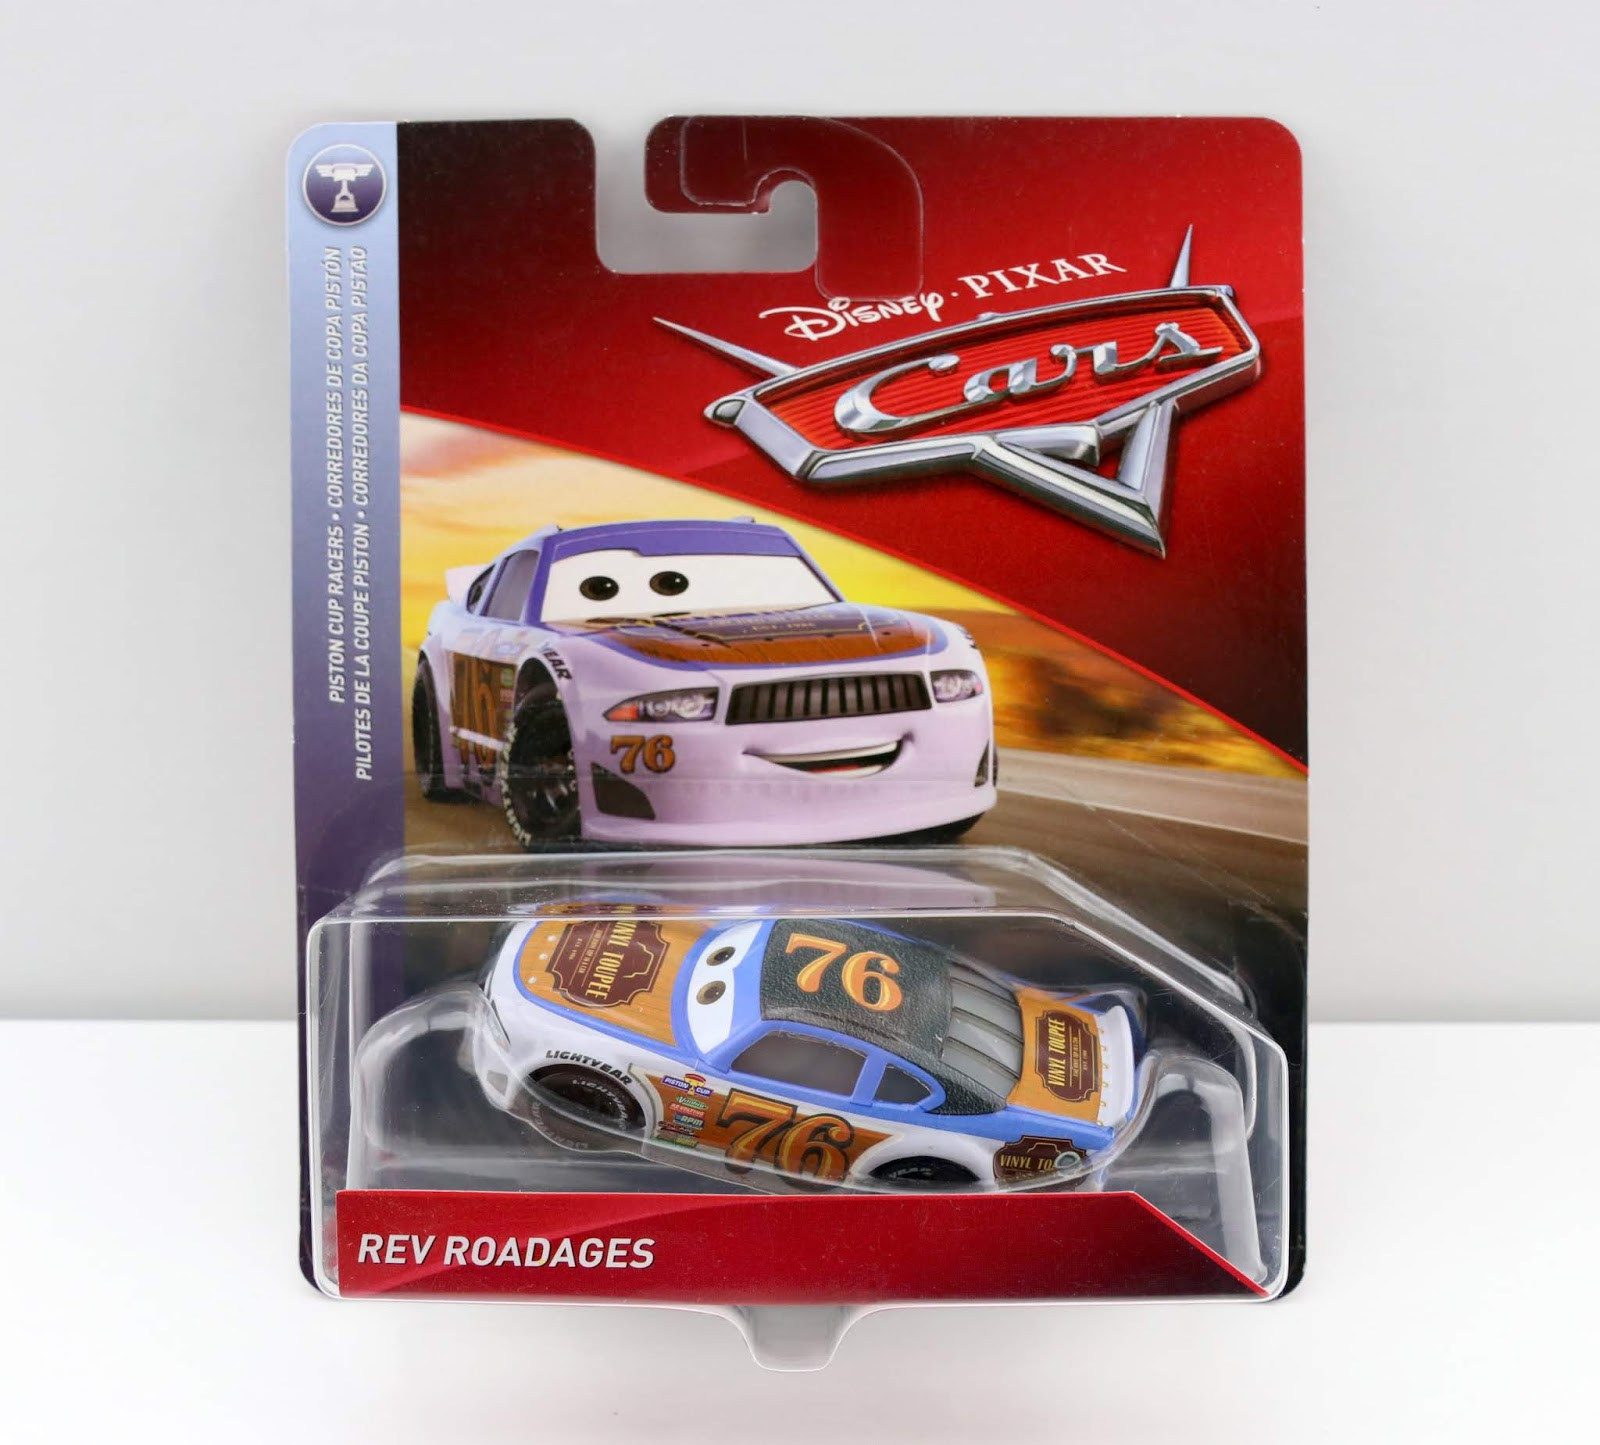 Cars 3 Rev Roadages diecast review